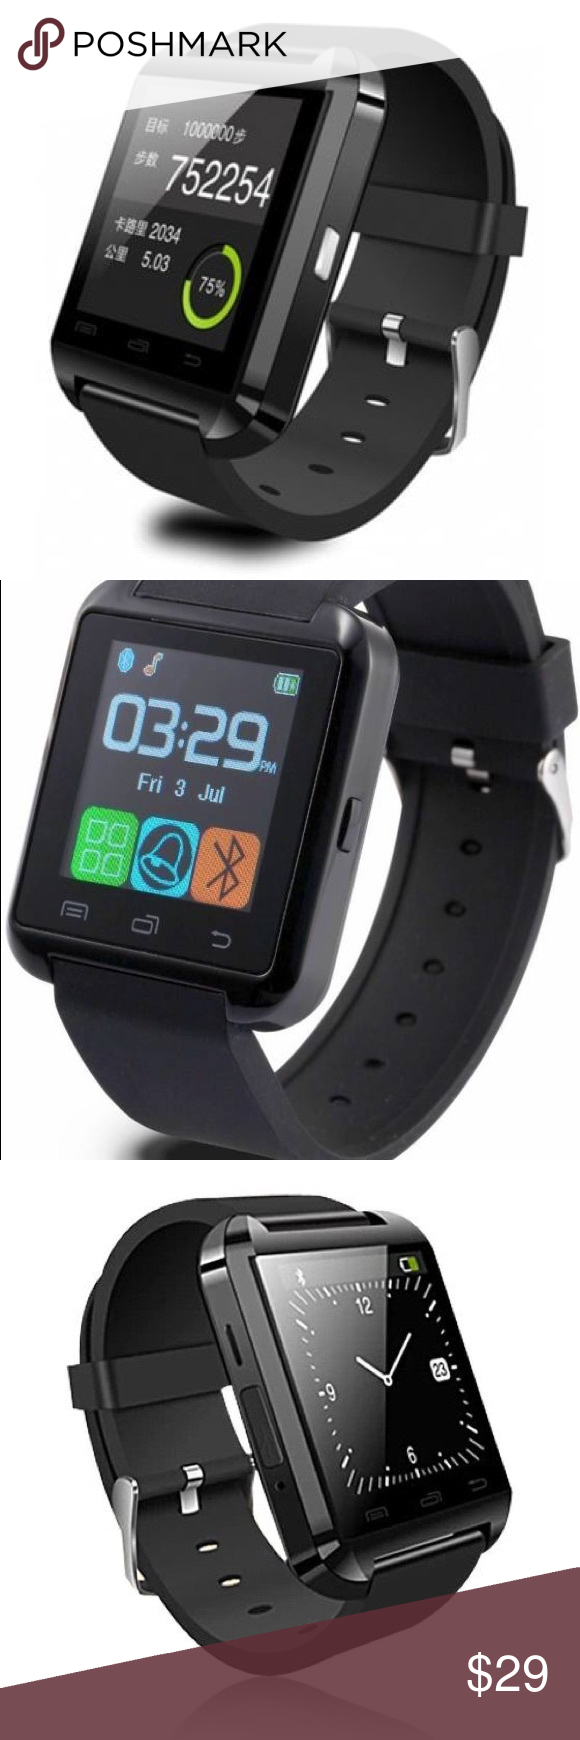 New U8 Smart Watch (Black) Brand new! Factory sealed and